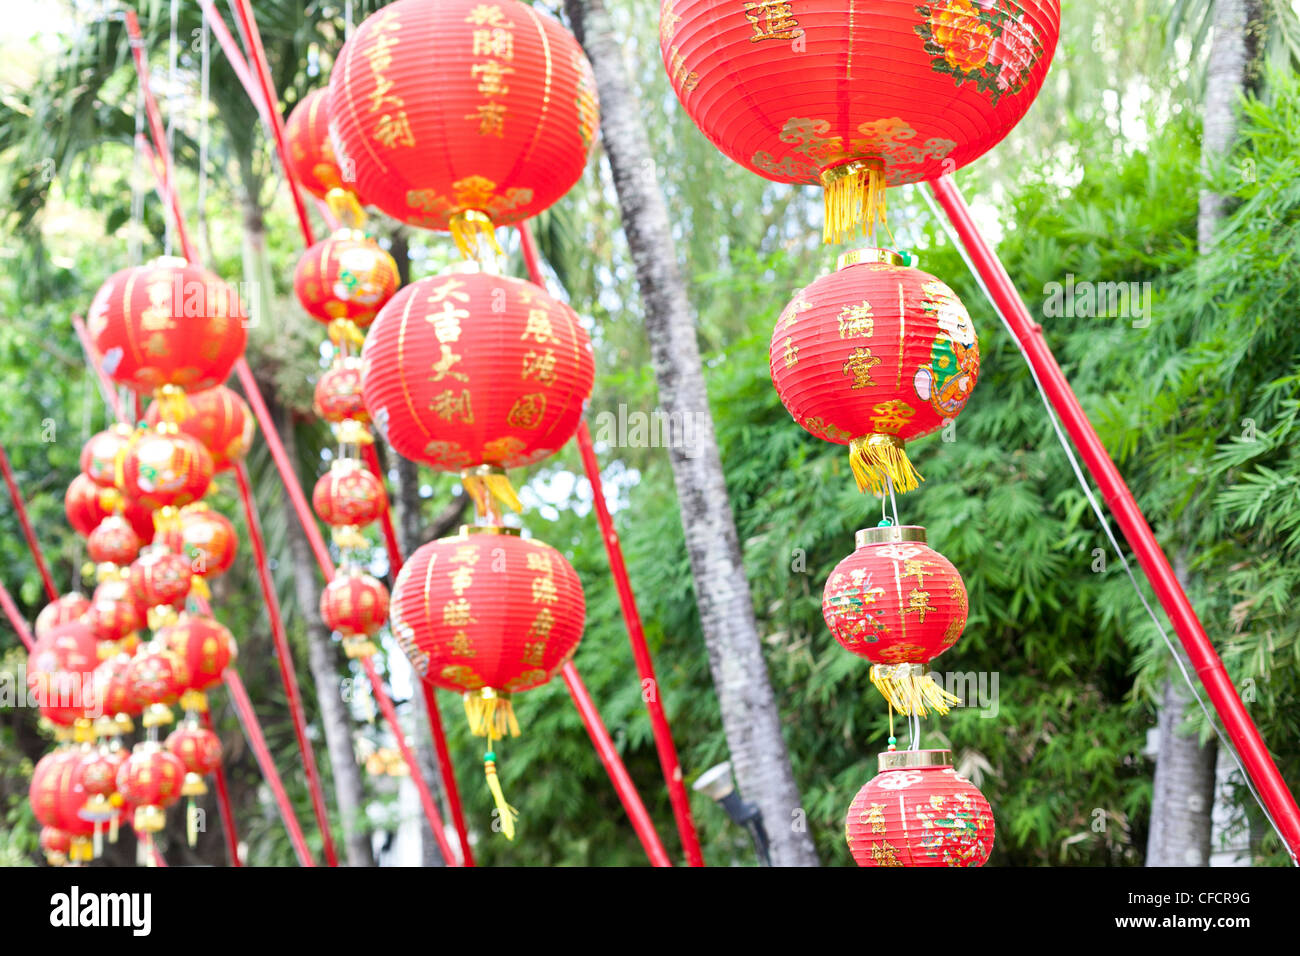 Chinese red lanterns in front of bamboo plants, Phuket, Thailand, Asia - Stock Image